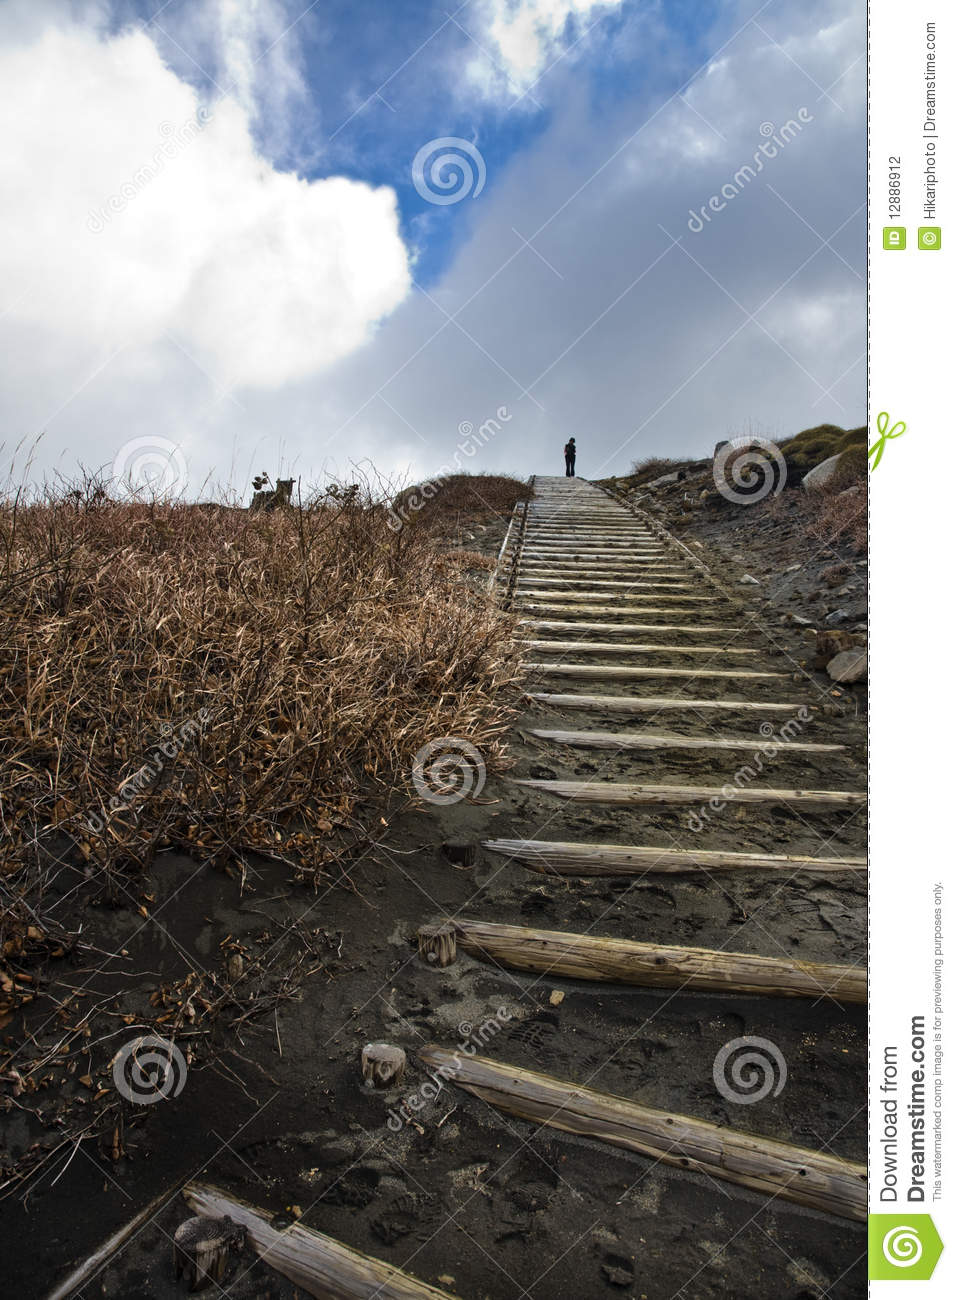 Lonely And Depressed >> Lonely Person On Top Of A Hill Stock Photo - Image of thoughtful, calm: 12886912